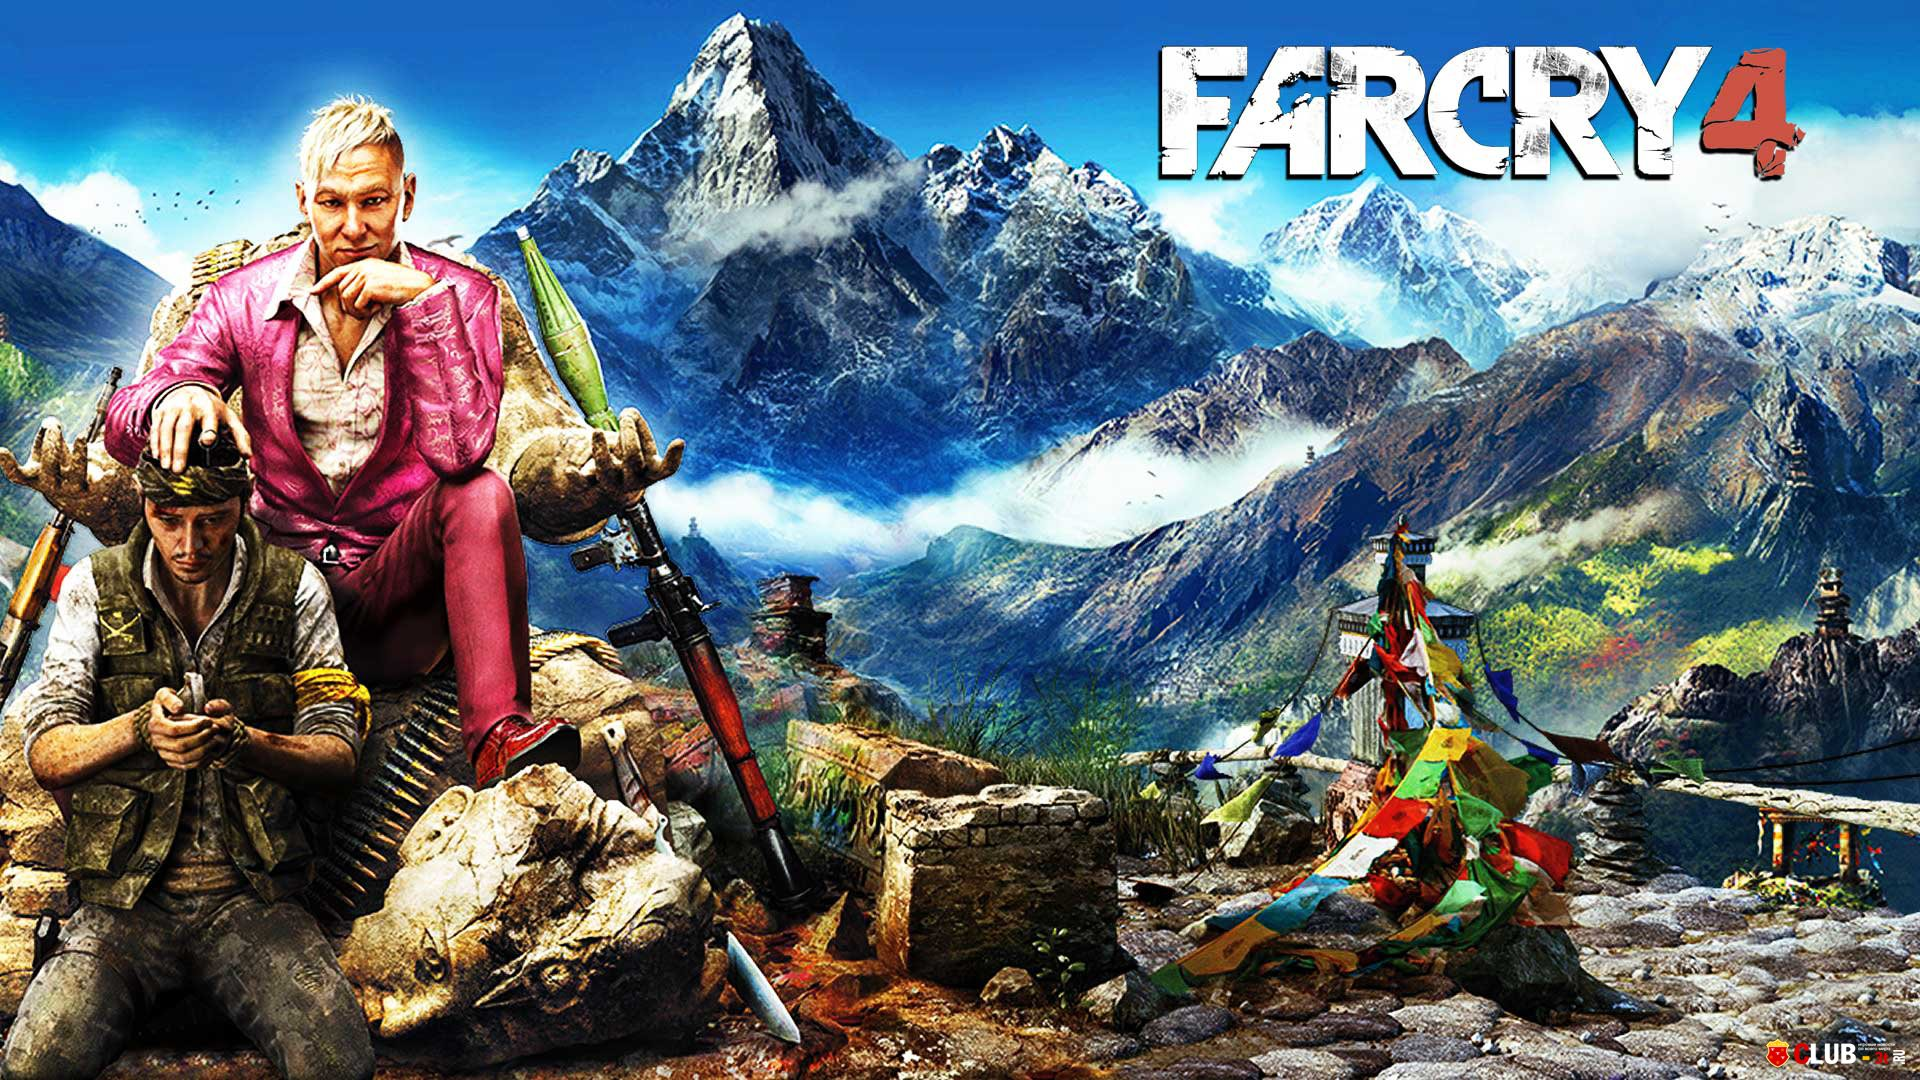 Секрет: Чит-коды и трейнер для Far Cry 4 (PC) - секреты